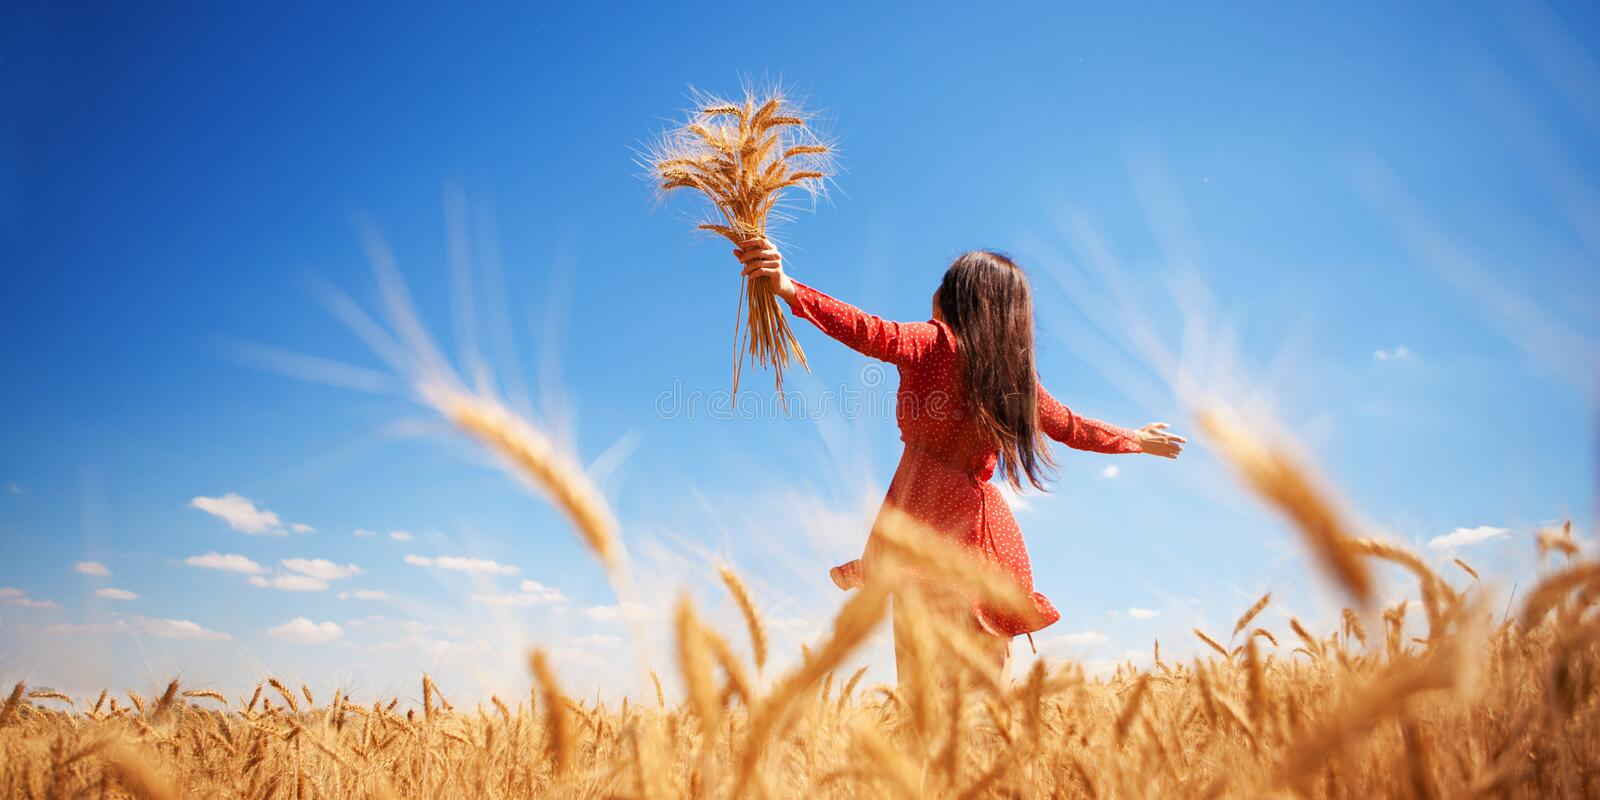 Happy woman enjoying the life in the field Nature beauty, blue sky and field with golden wheat. Outdoor lifestyle. Freedom concept stock photo